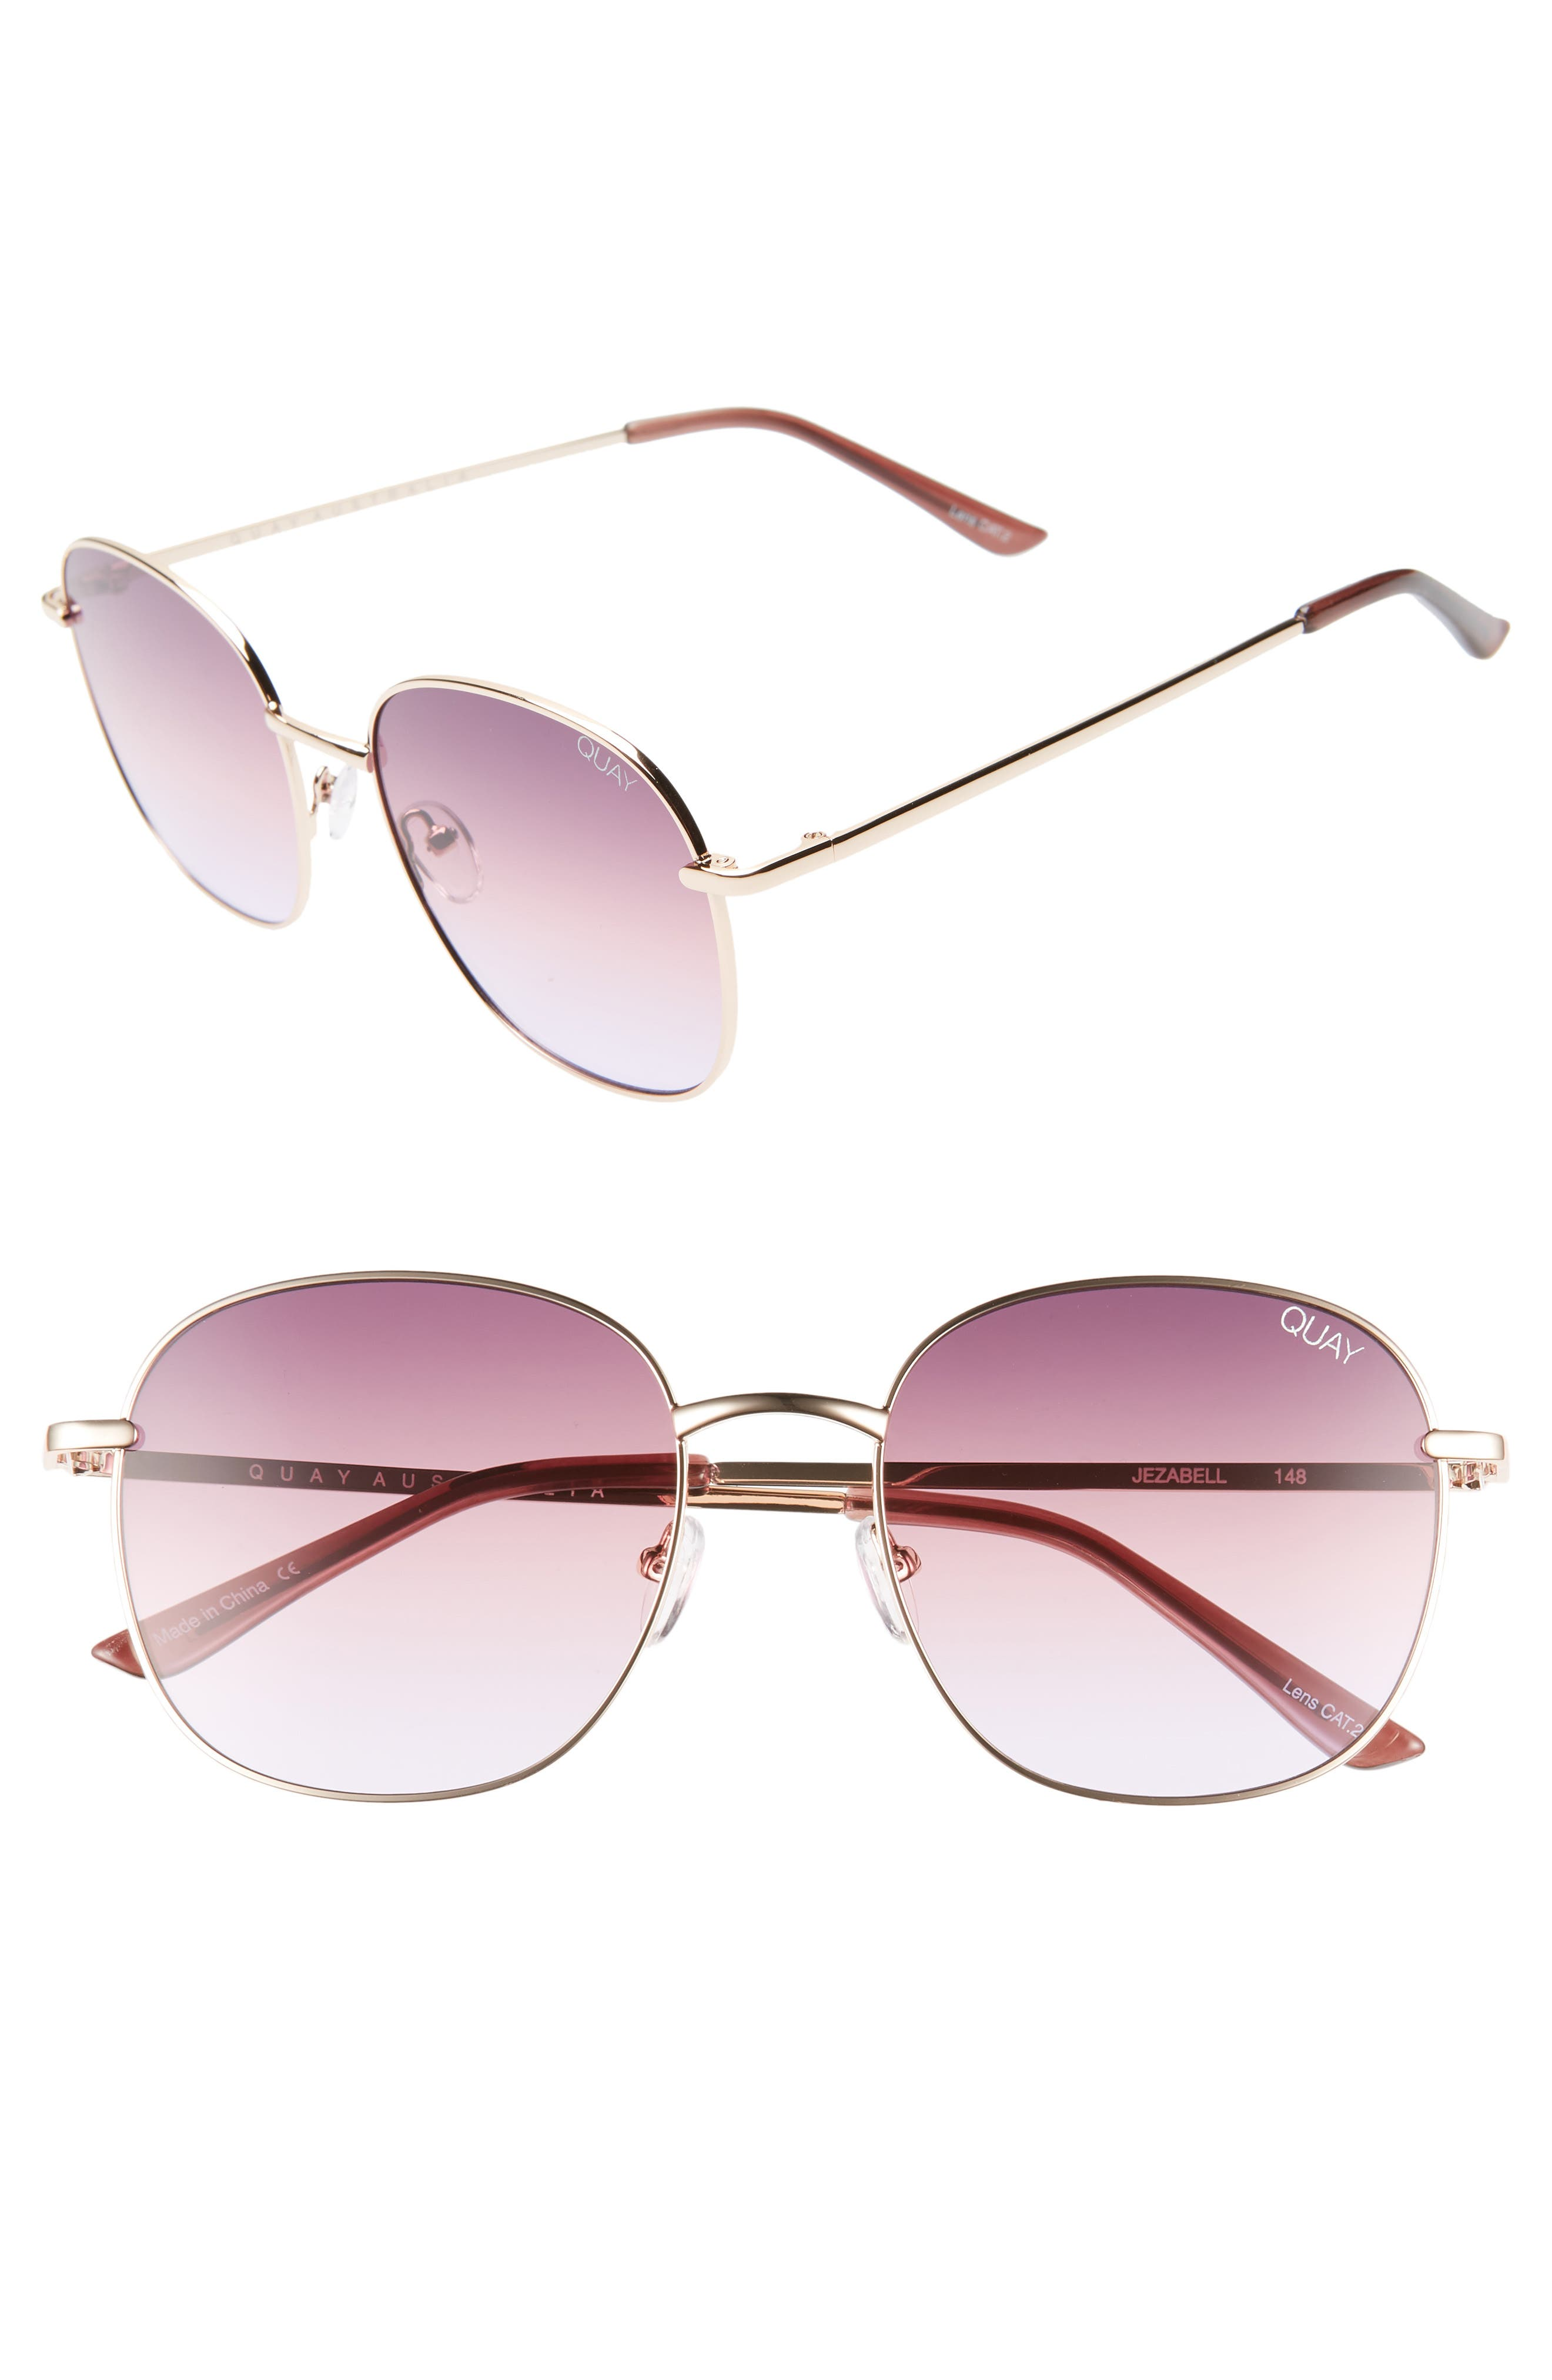 Jezabell 57mm Round Sunglasses,                         Main,                         color, ROSE / PURPLE PINK FADE